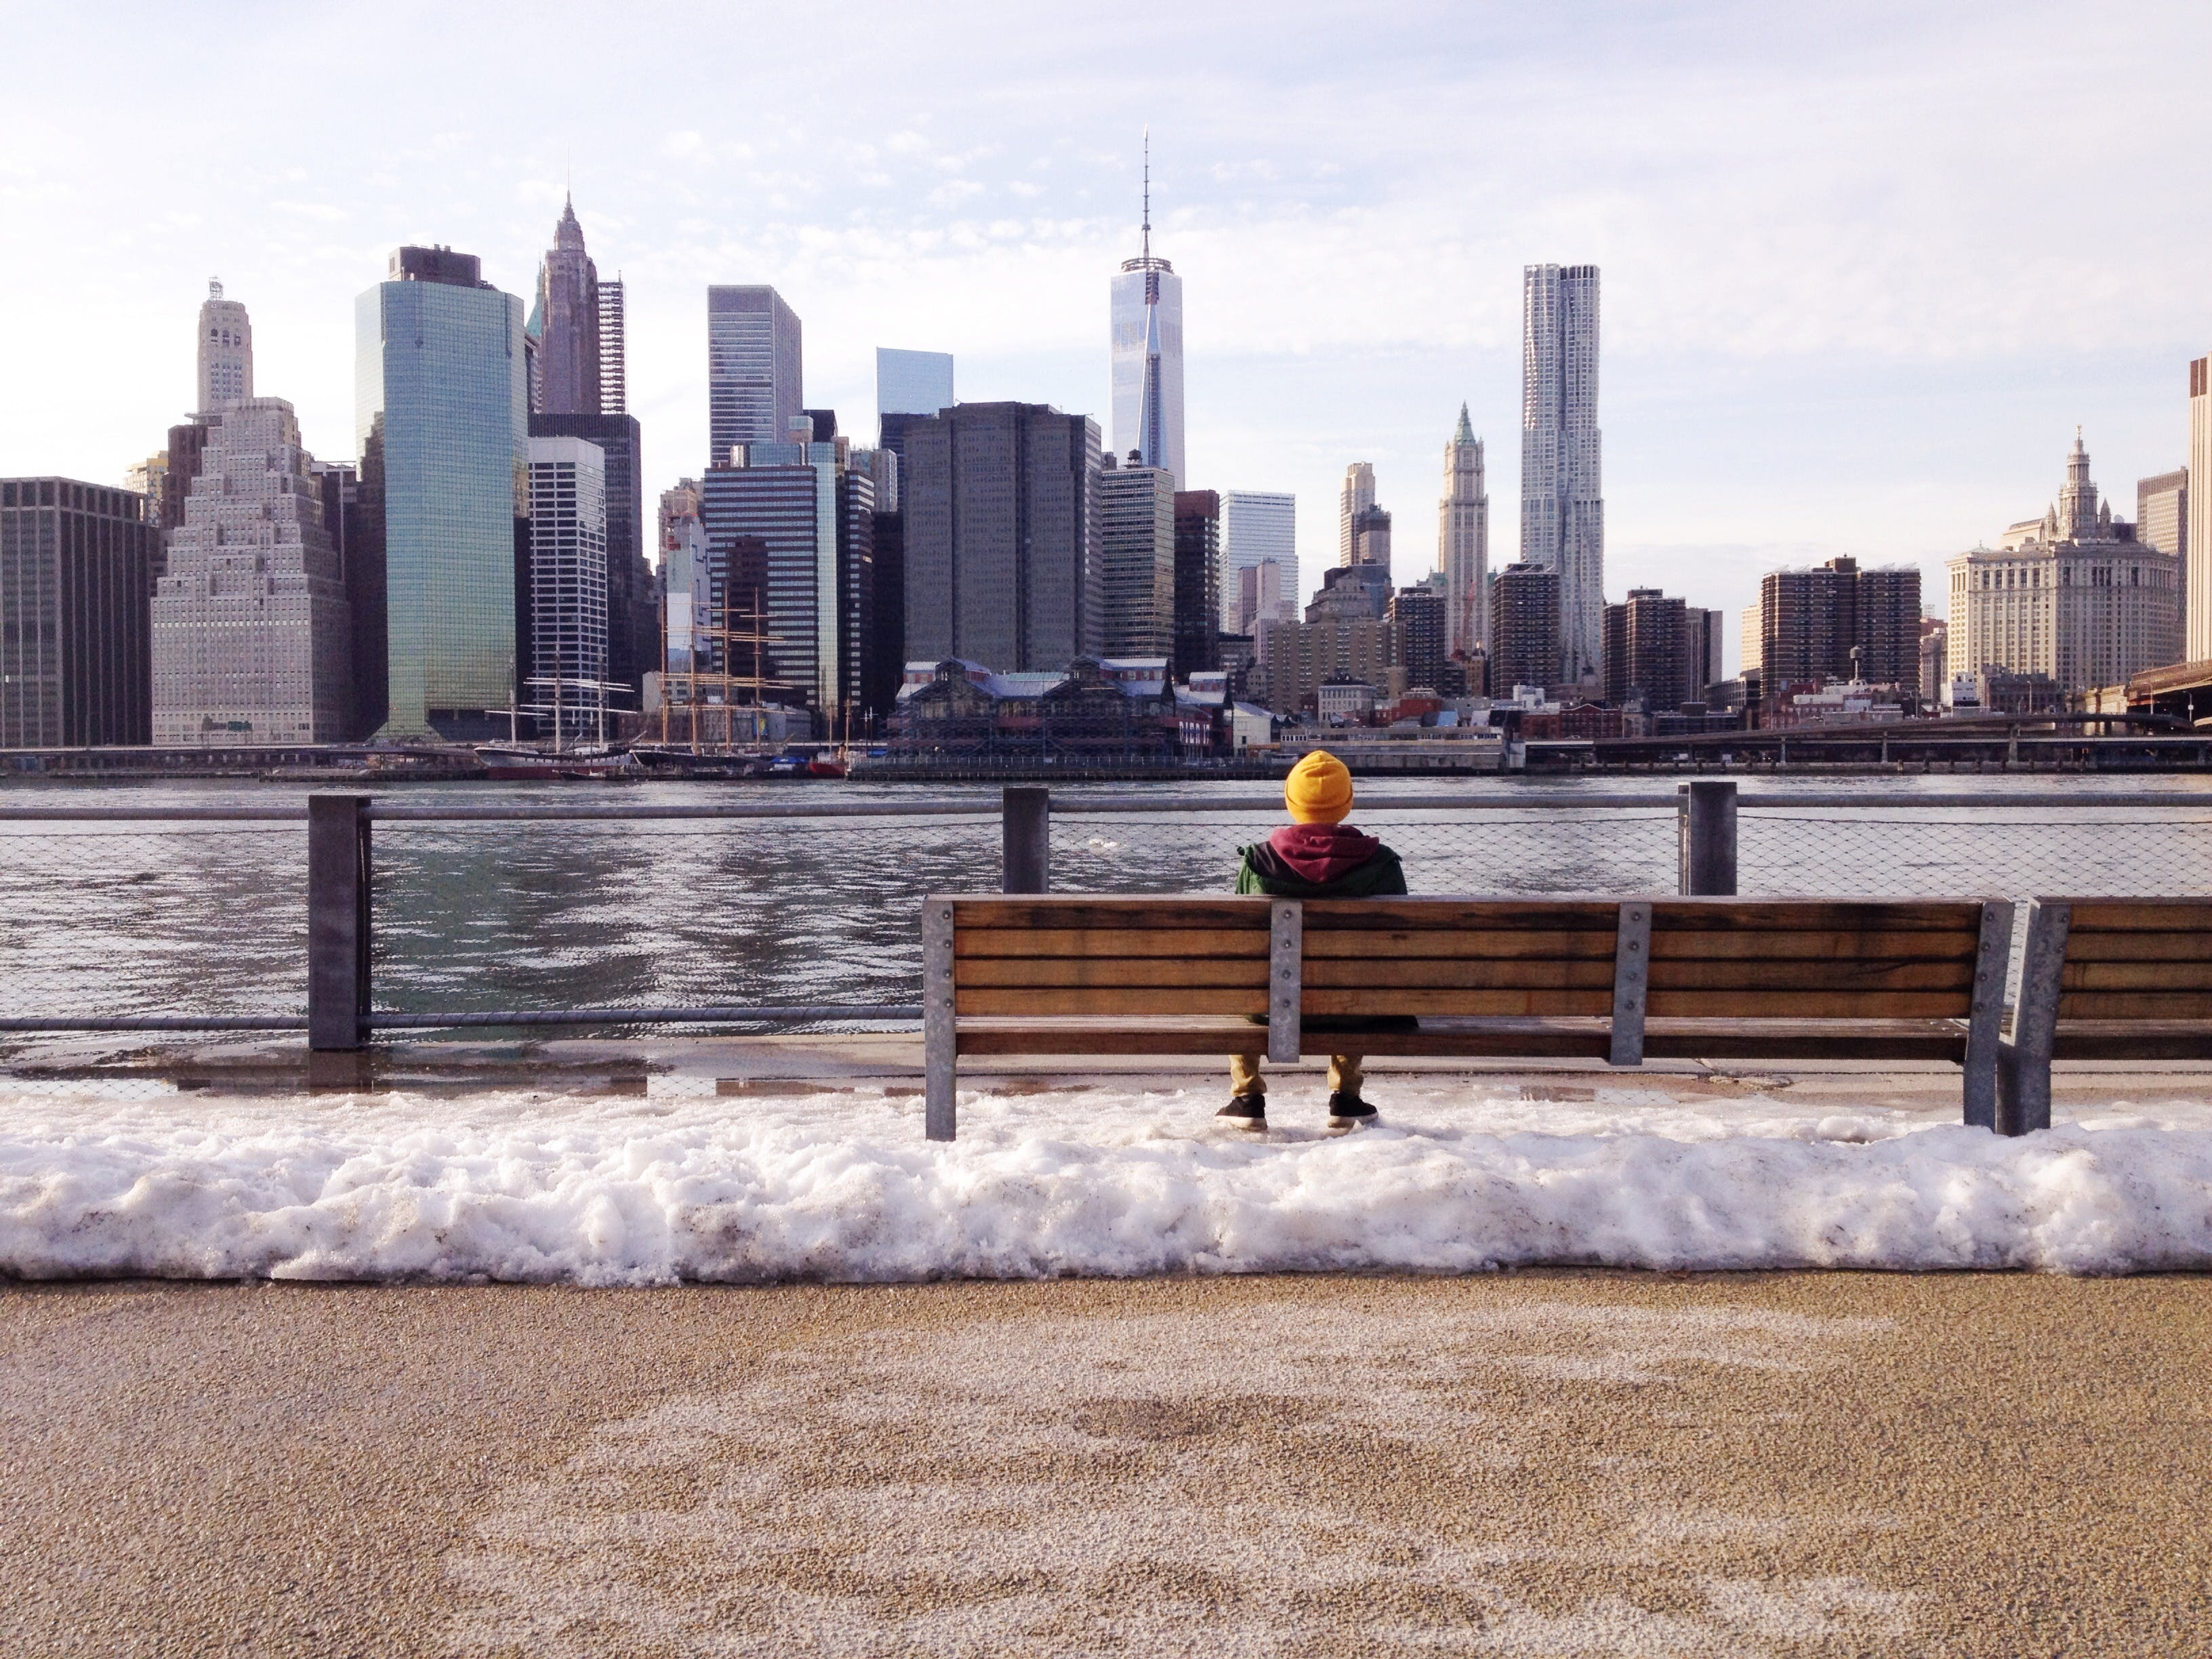 Free stock photo of cold, bench, city, man